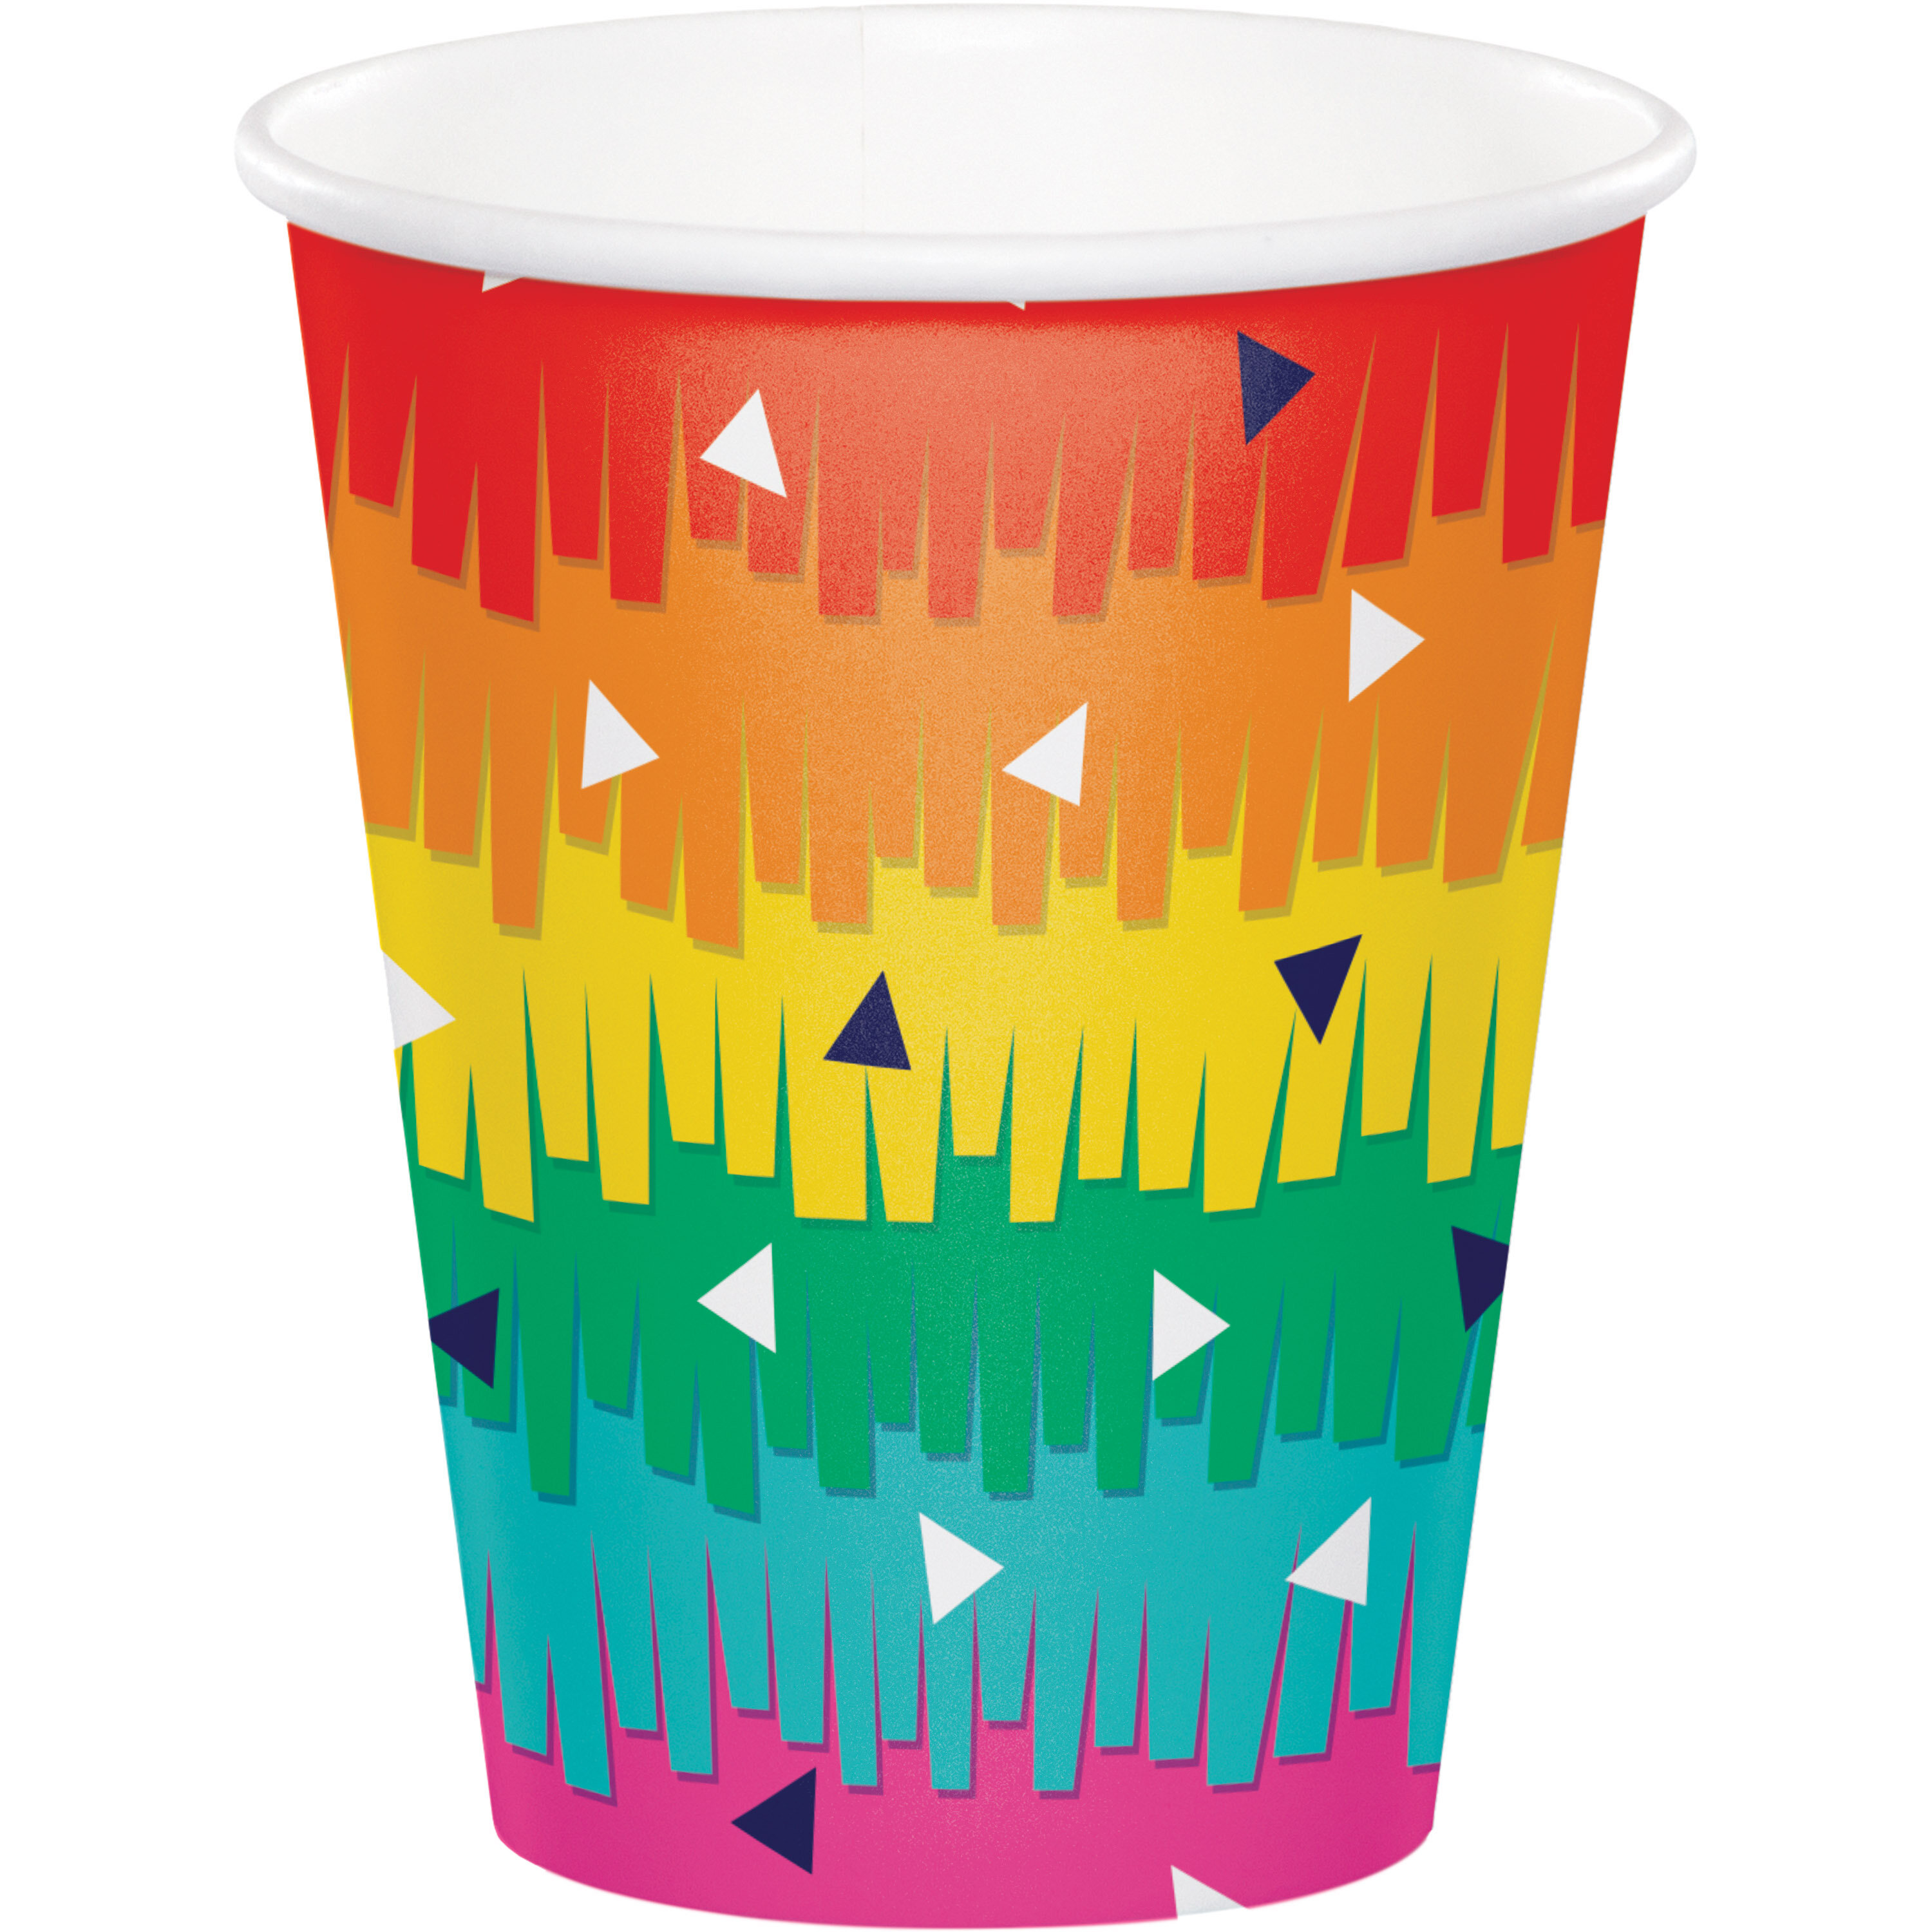 The Party Aisle Paper Disposable Every Day Cup Wayfair